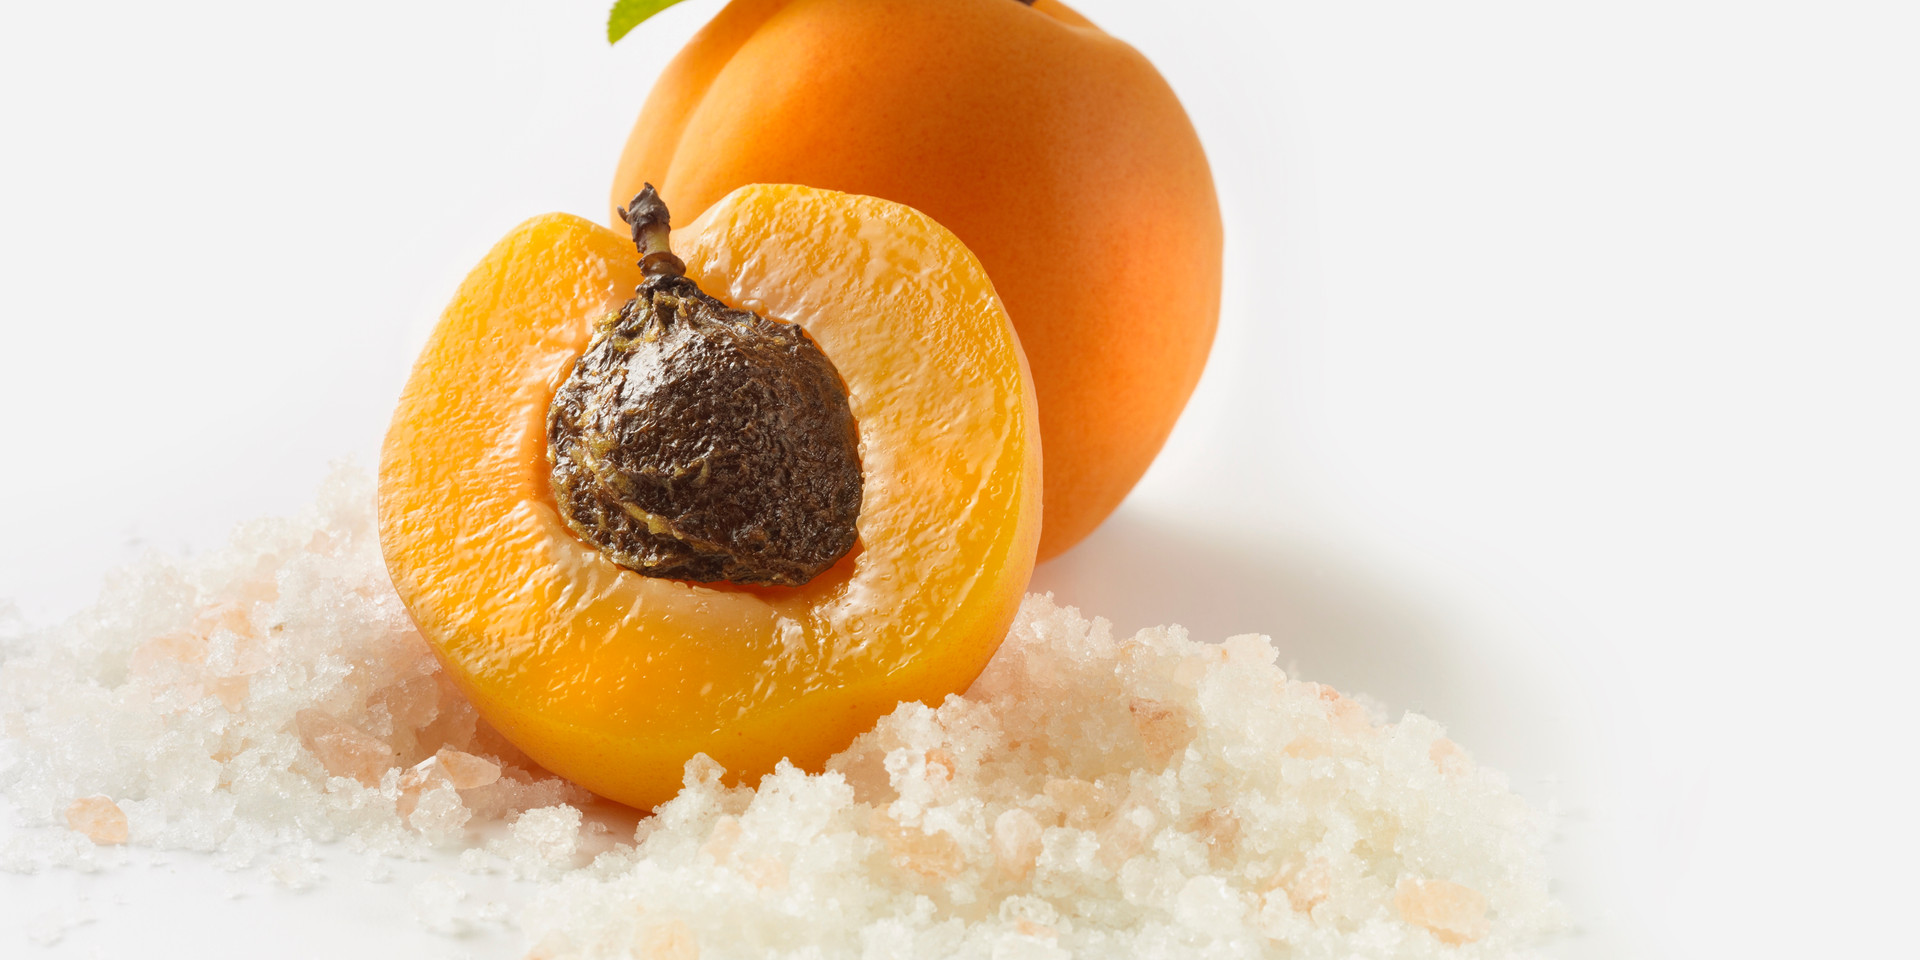 St. Ives Apricots